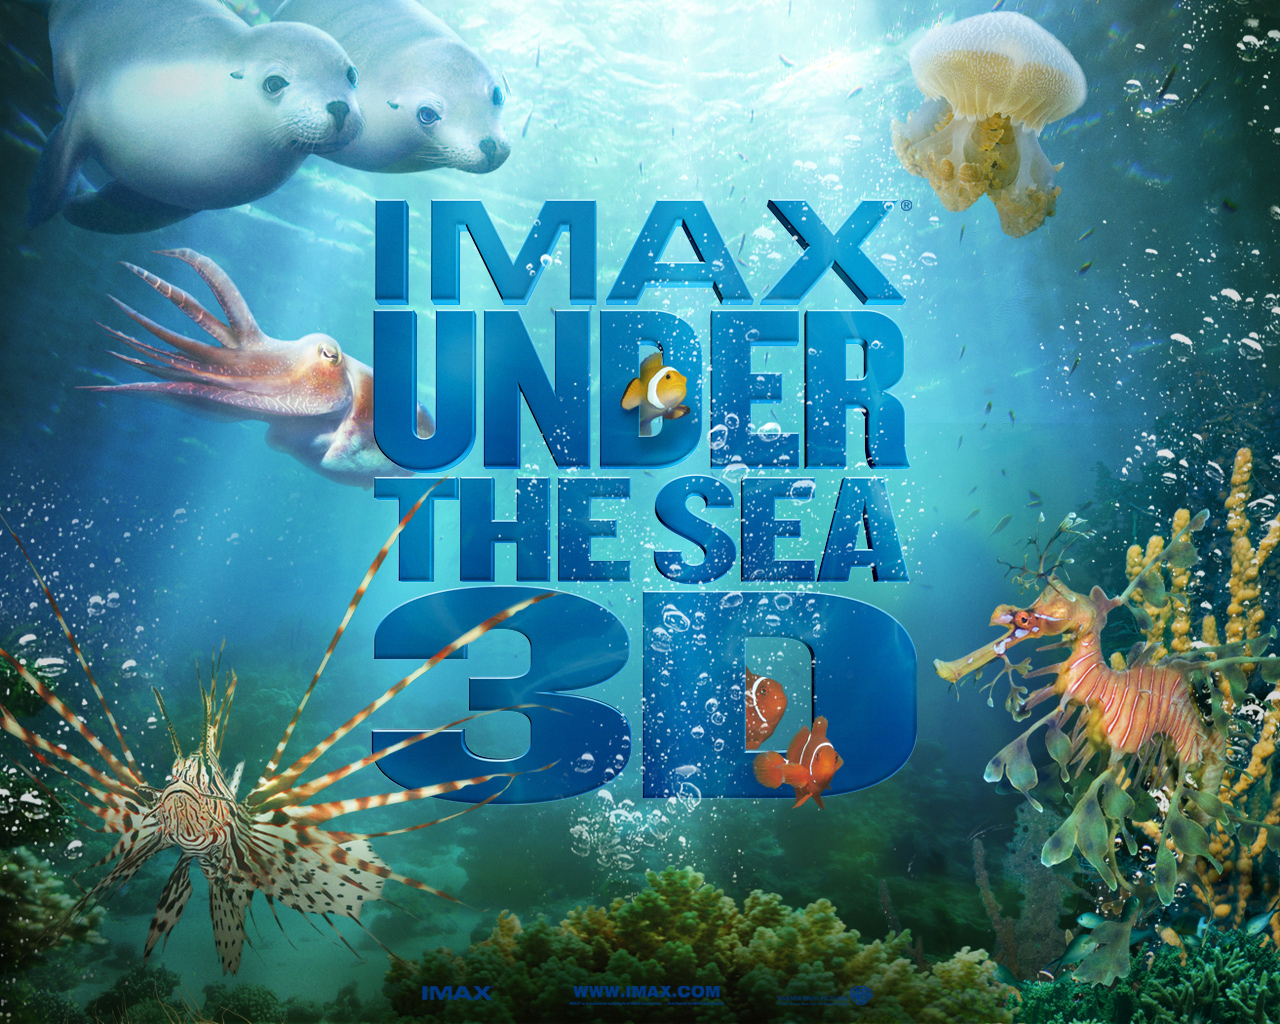 Ipad Wallpaper Hd Imax Under The Sea Post In 1280 215 1024 Pixel All Fishes